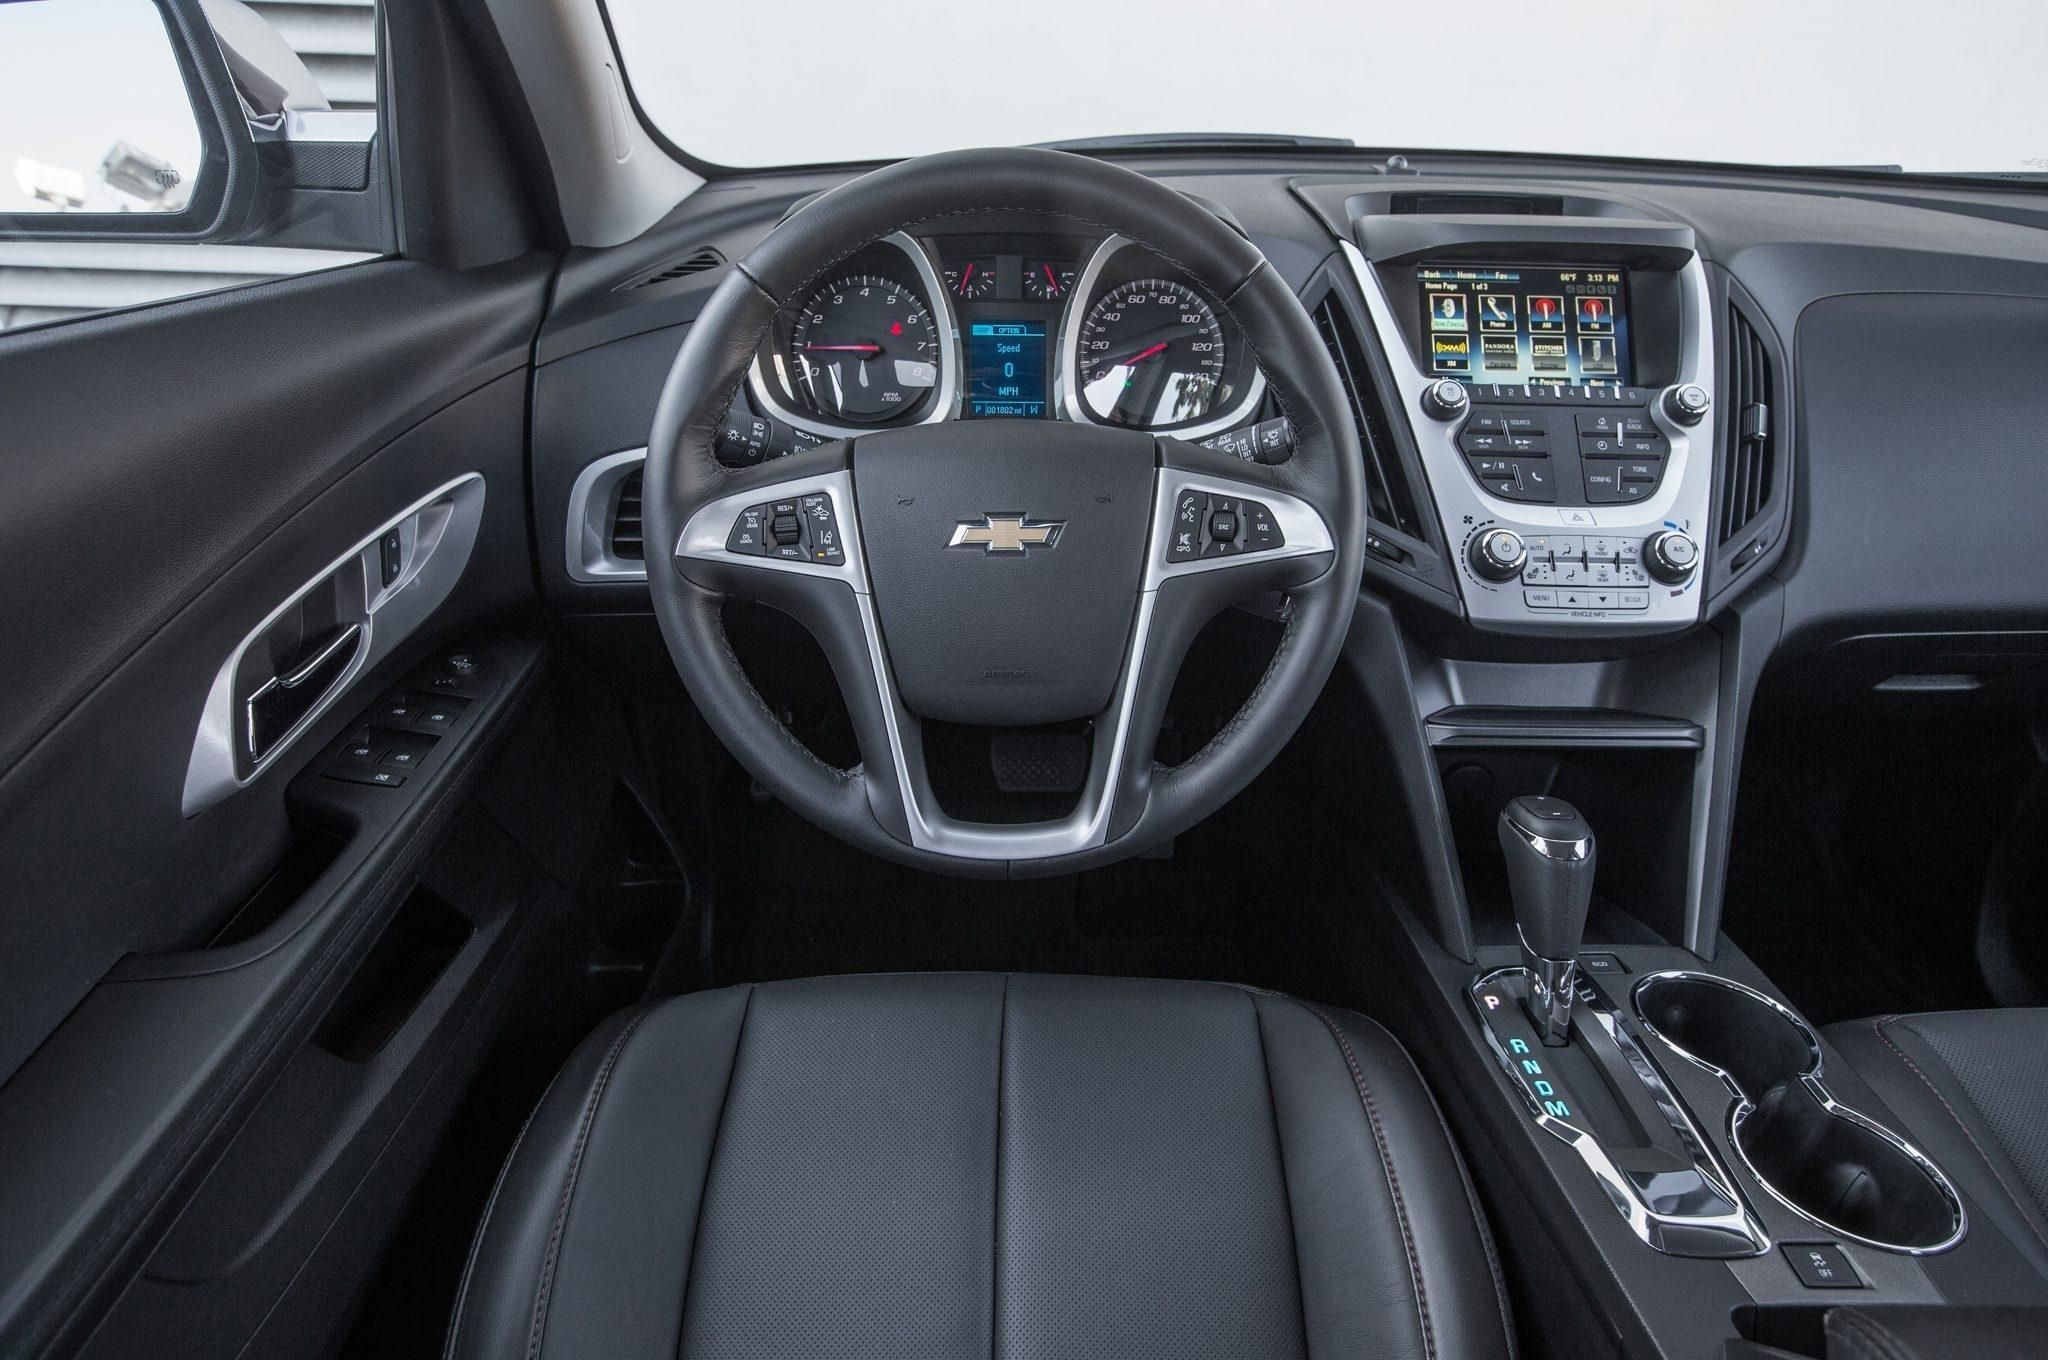 2019 Chevrolet Equinox Interior - Concept And Review ...